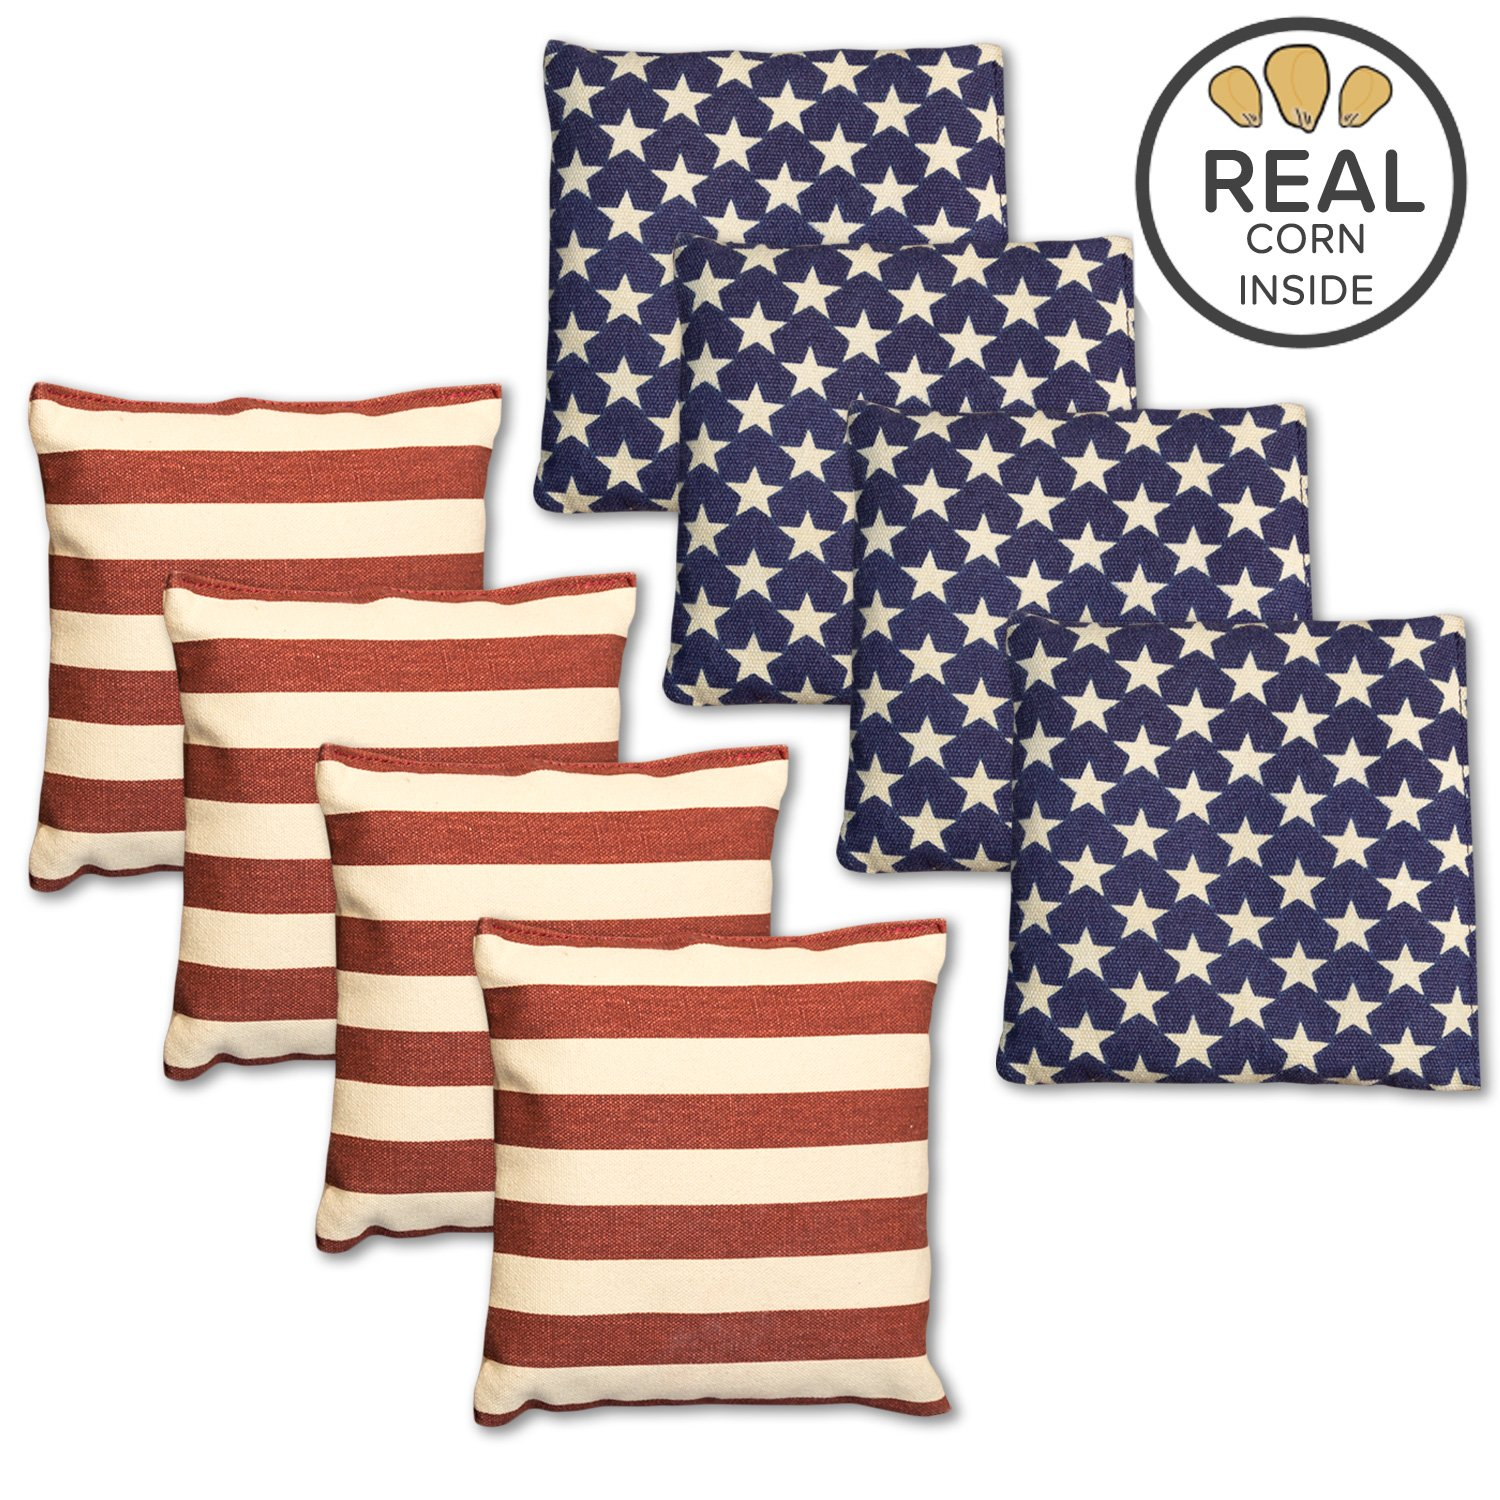 Corn Filled Cornhole Bags - Set of 8 American Flag Bean Bags for Corn Hole Game - Regulation Size & Weight - Stars and Stripes by Play Platoon